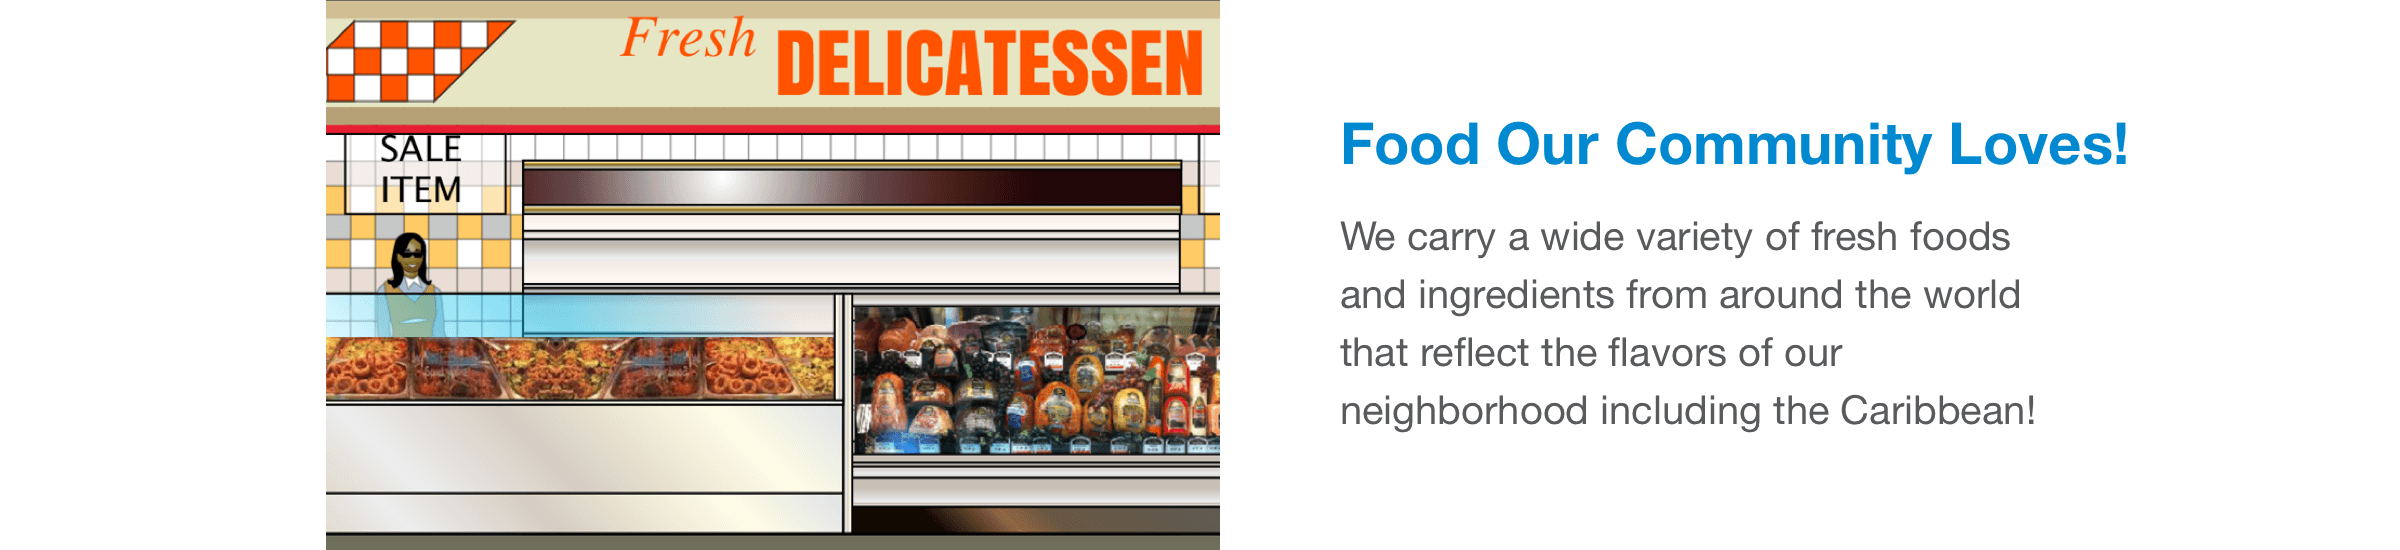 We carry a wide variety of fresh foods and ingredients from around the world that reflect the flavors of our neighborhood including the Caribbean!